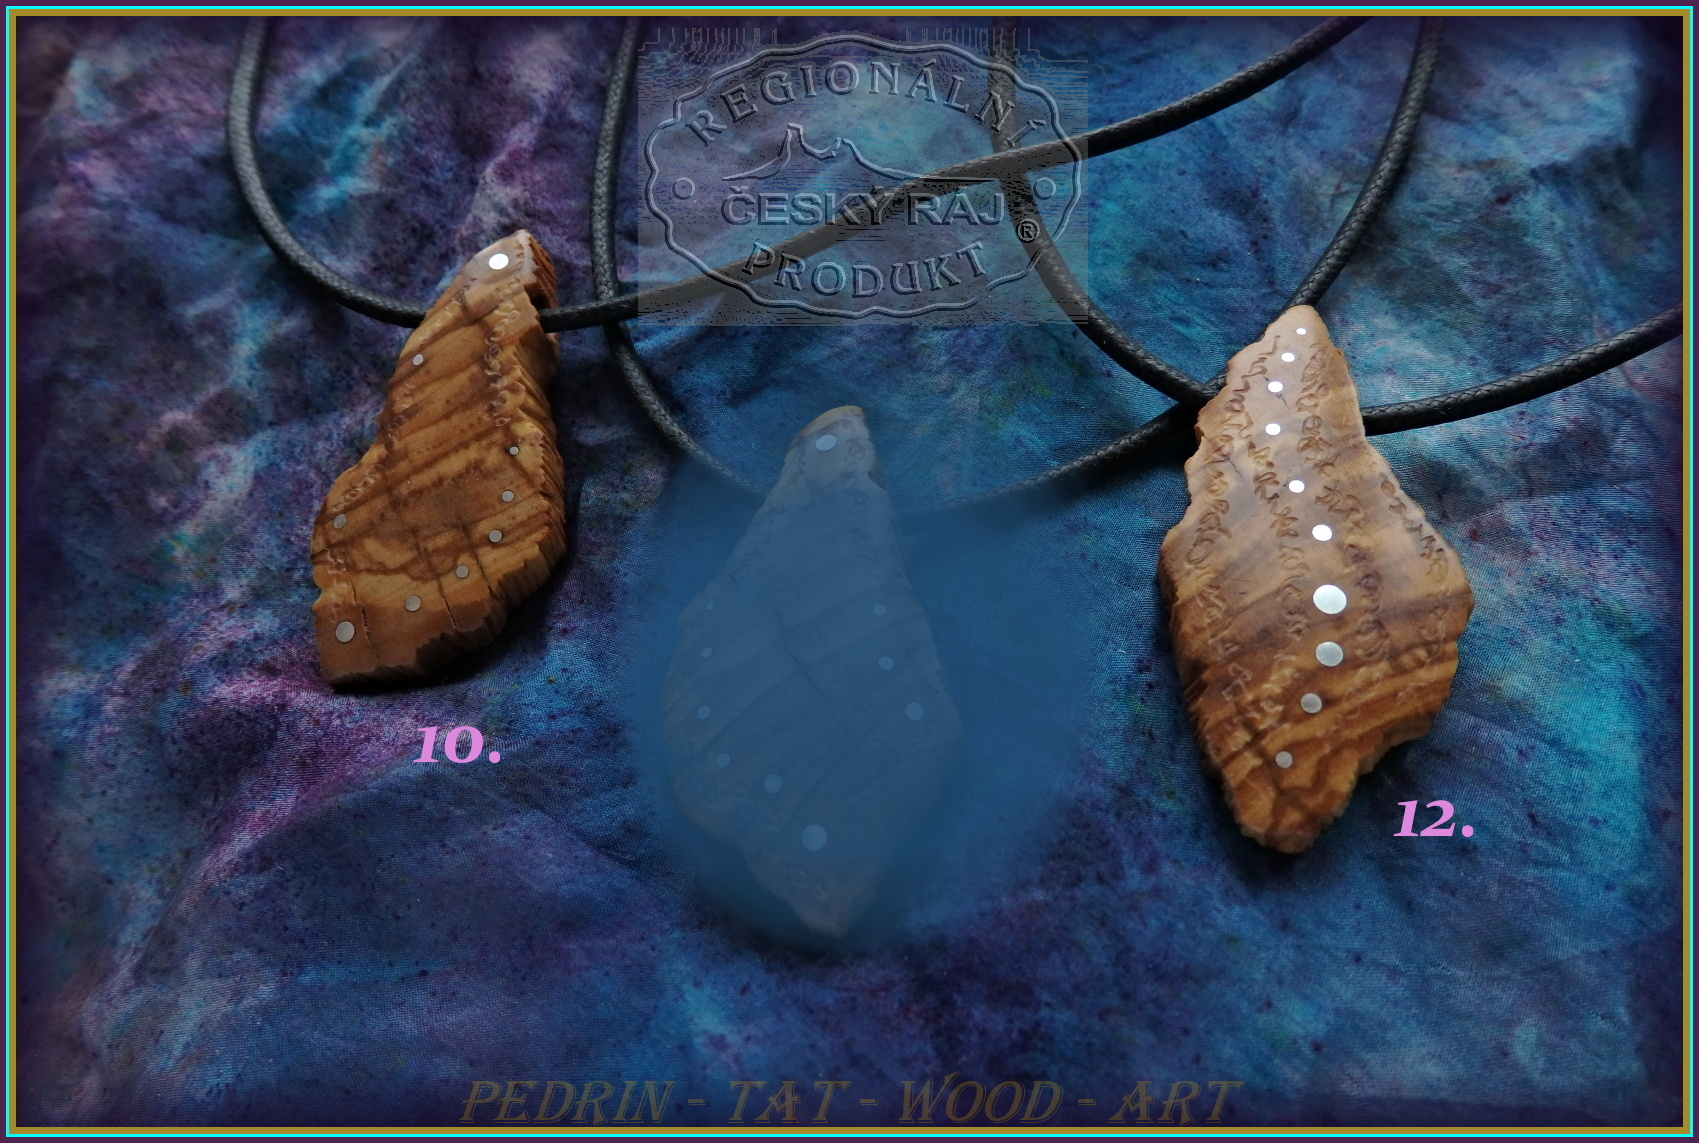 WOODEN NECKLACES NH-539 10..12 OLIVEN WOOD - SICILIA